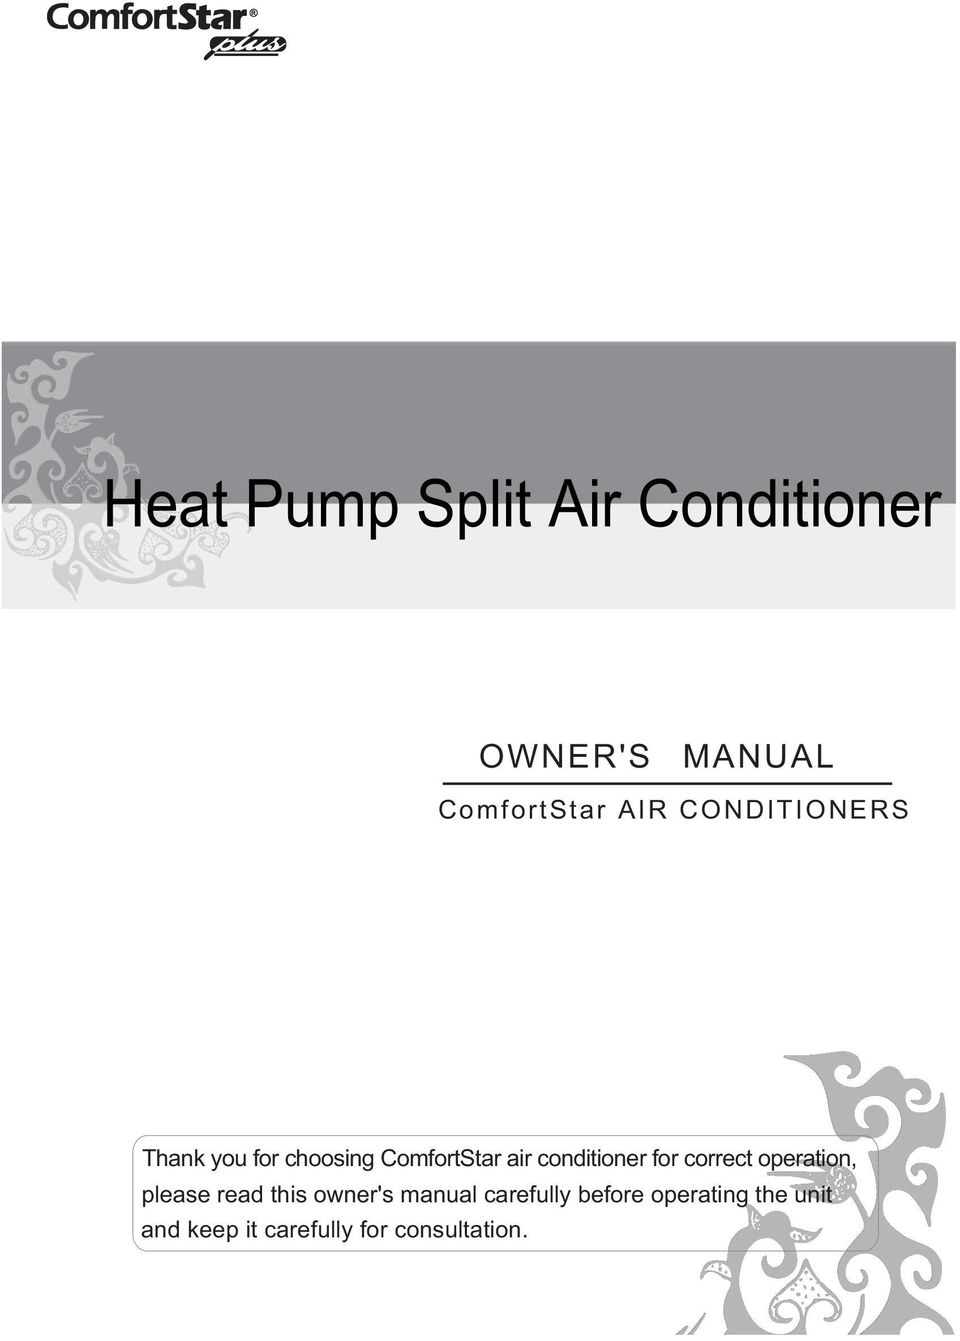 Heat Pump Split Air Conditioner Pdf Inverter Renesas Electronics India For Correct Operation Please Read This Owners Manual Carefully